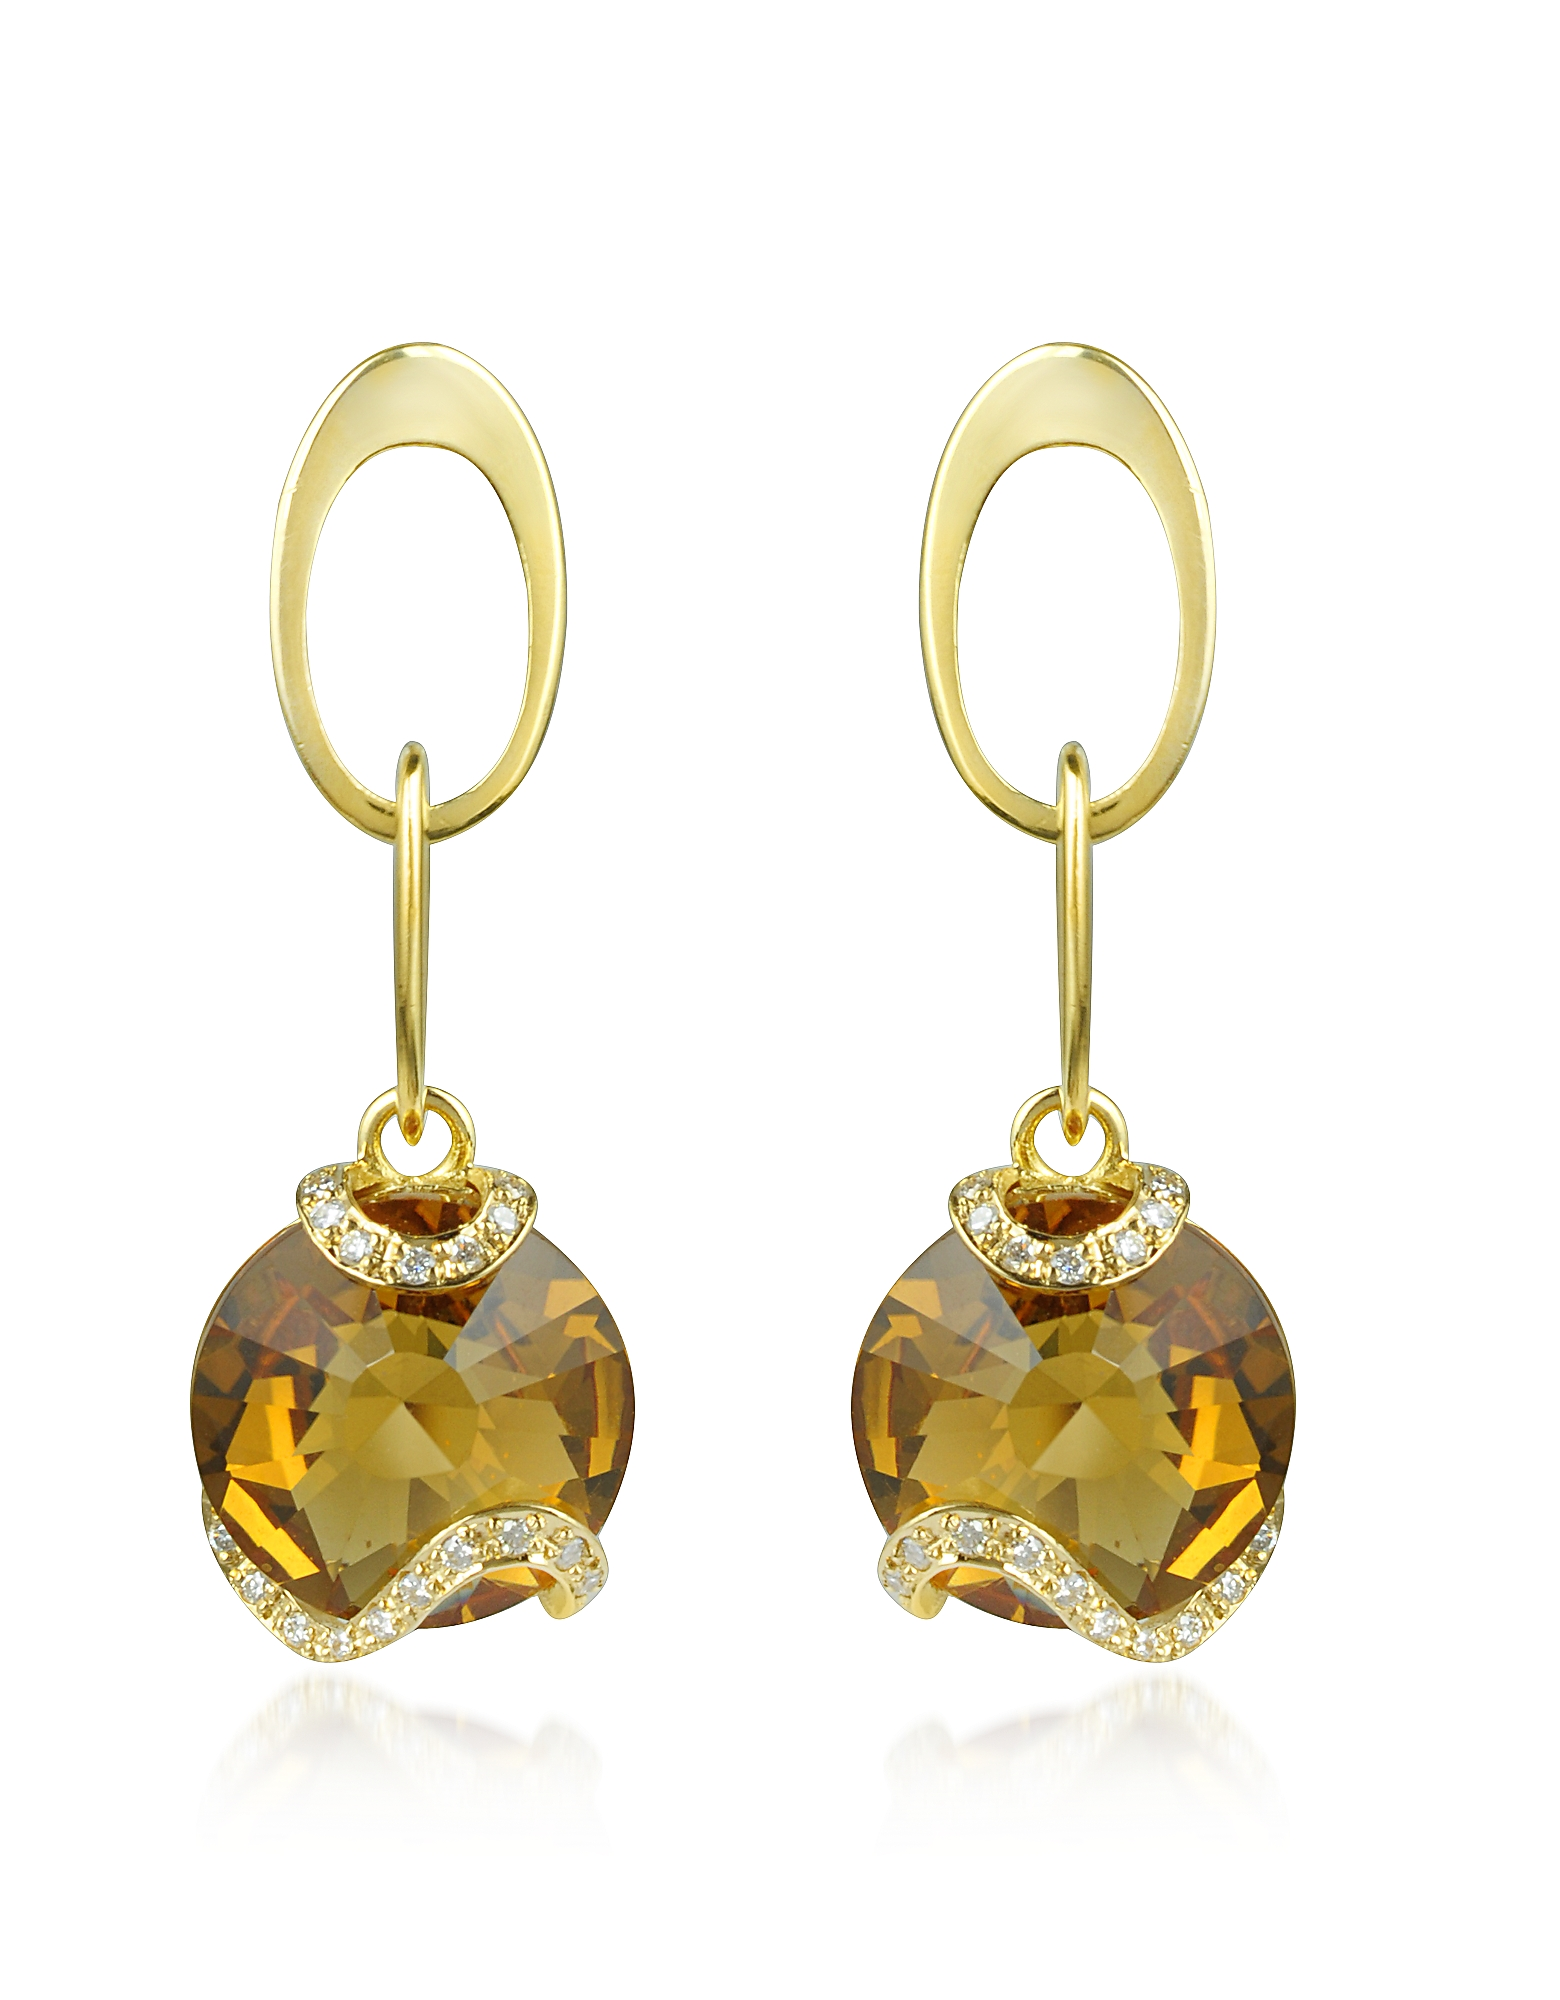 Incanto Royale Earrings, Citrine and Diamond 18K Gold Earrings